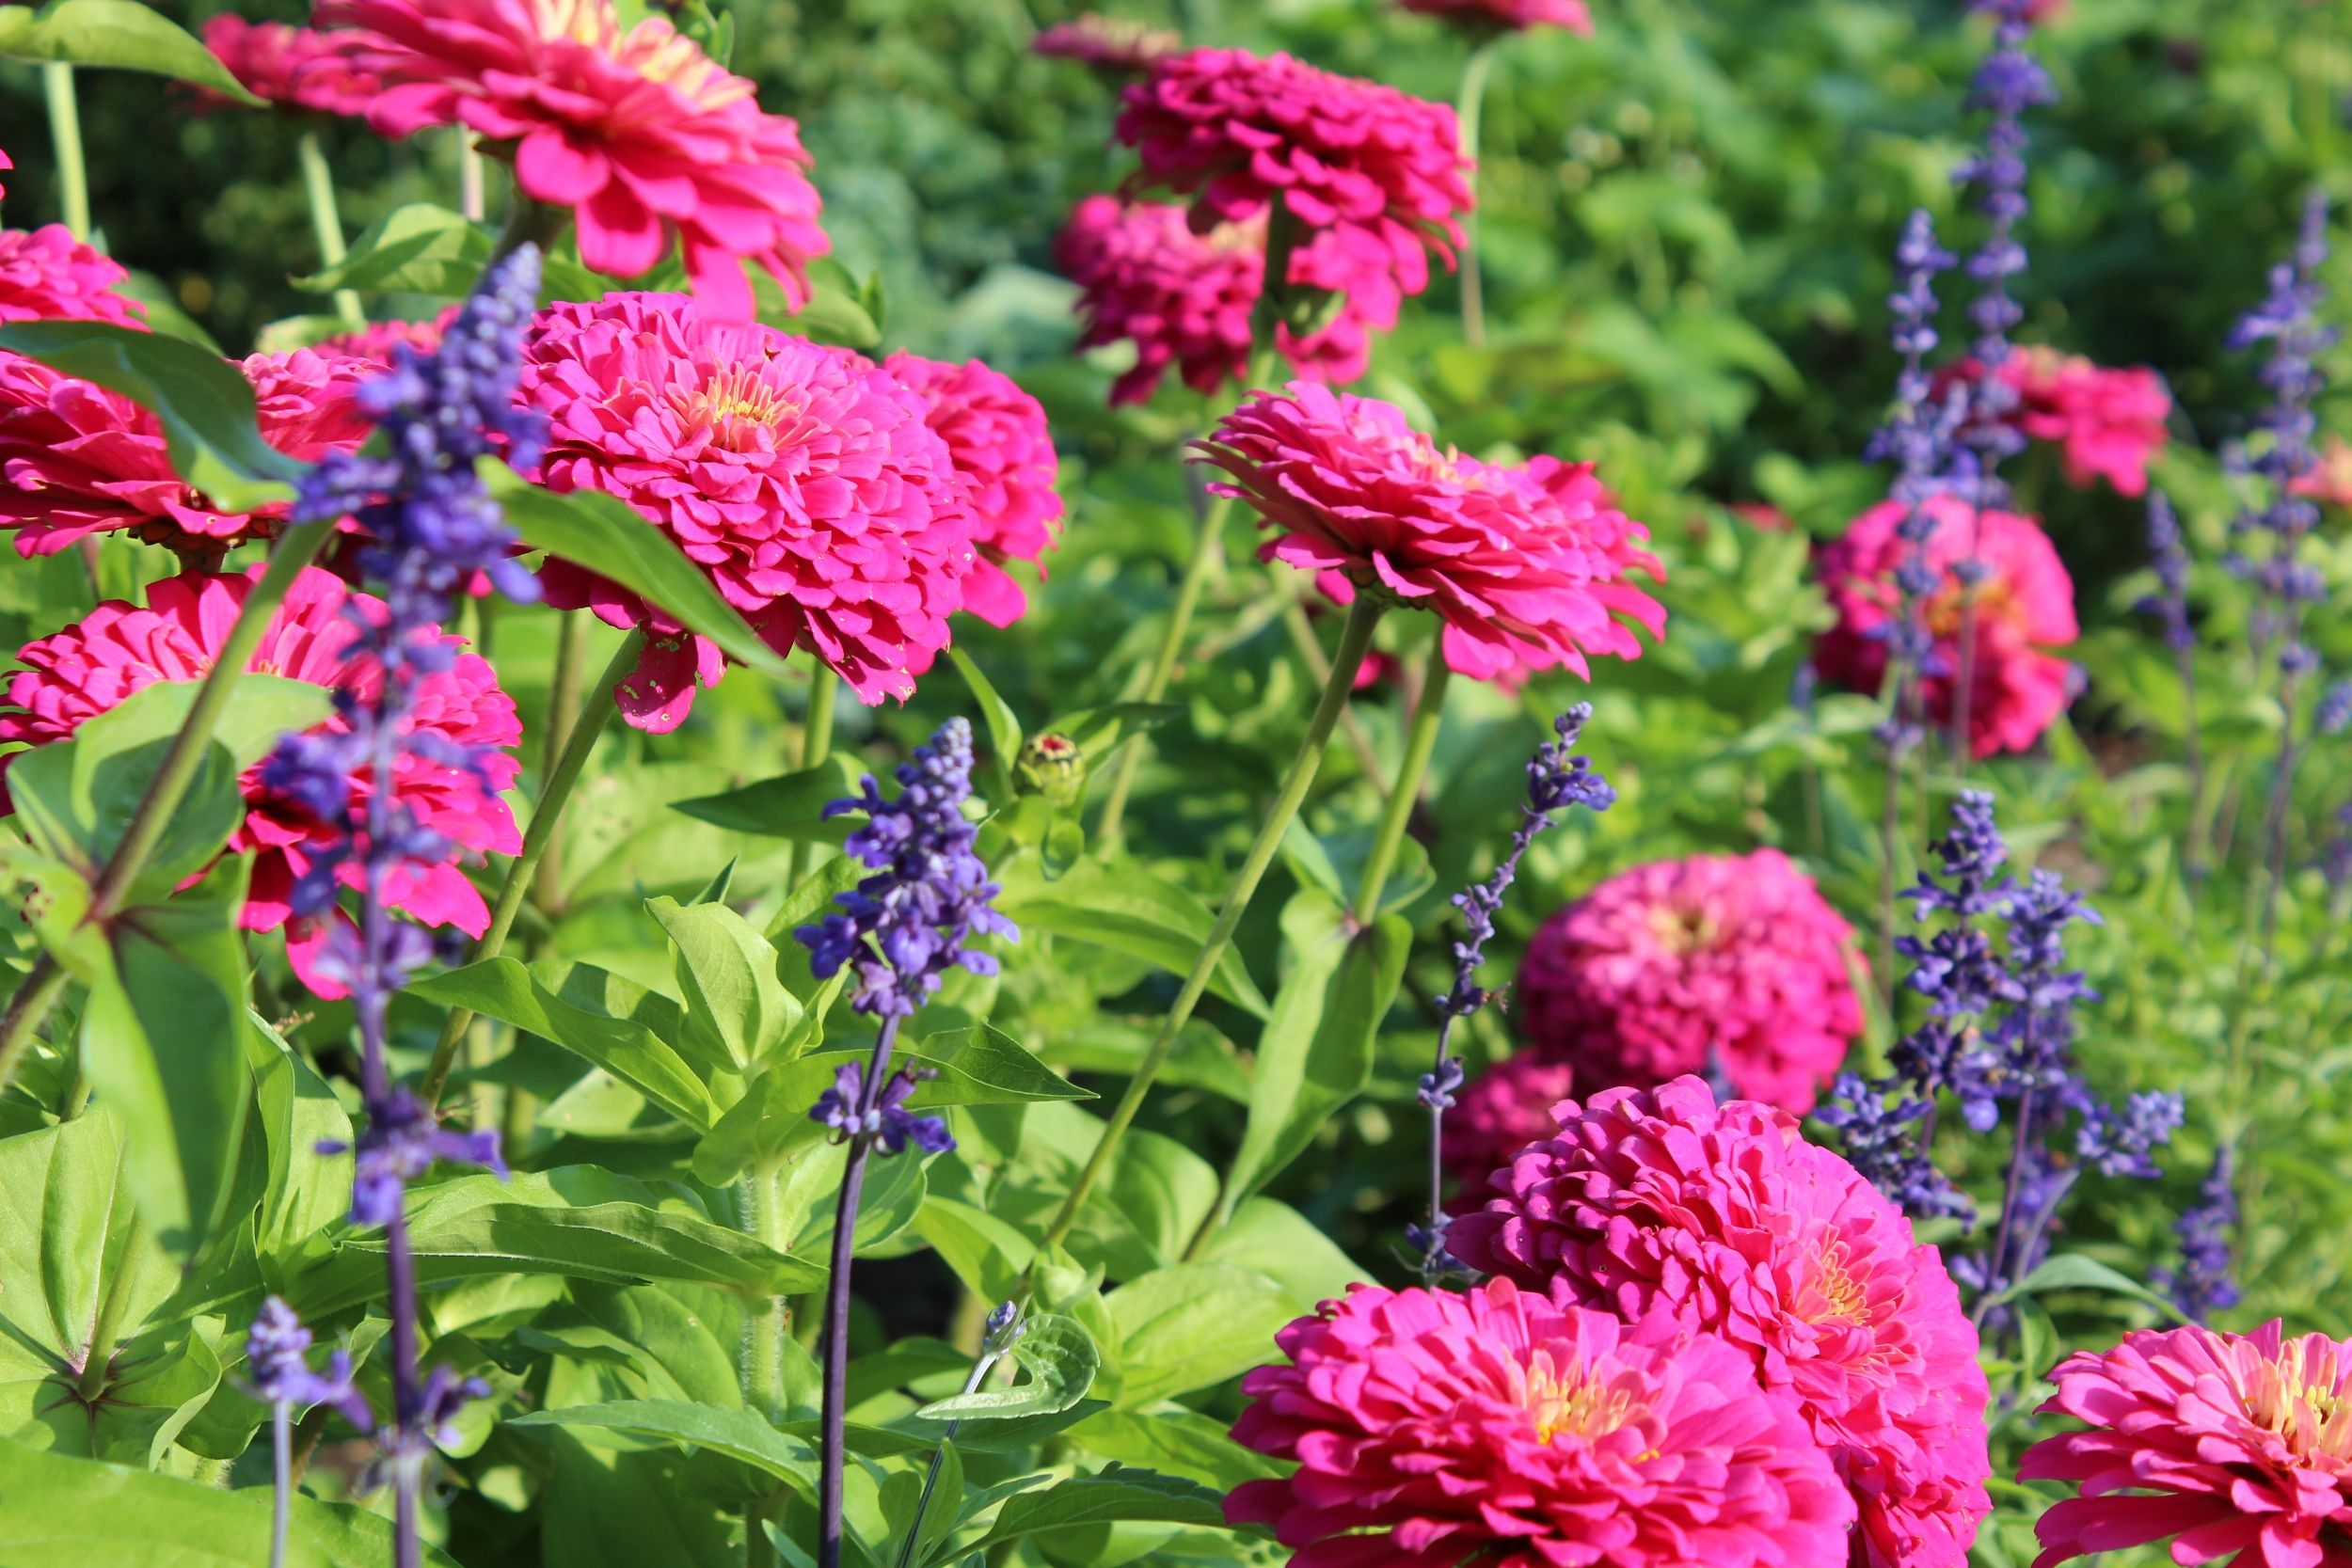 zinnias-and-salvia-blog.jpg (2500×1667)